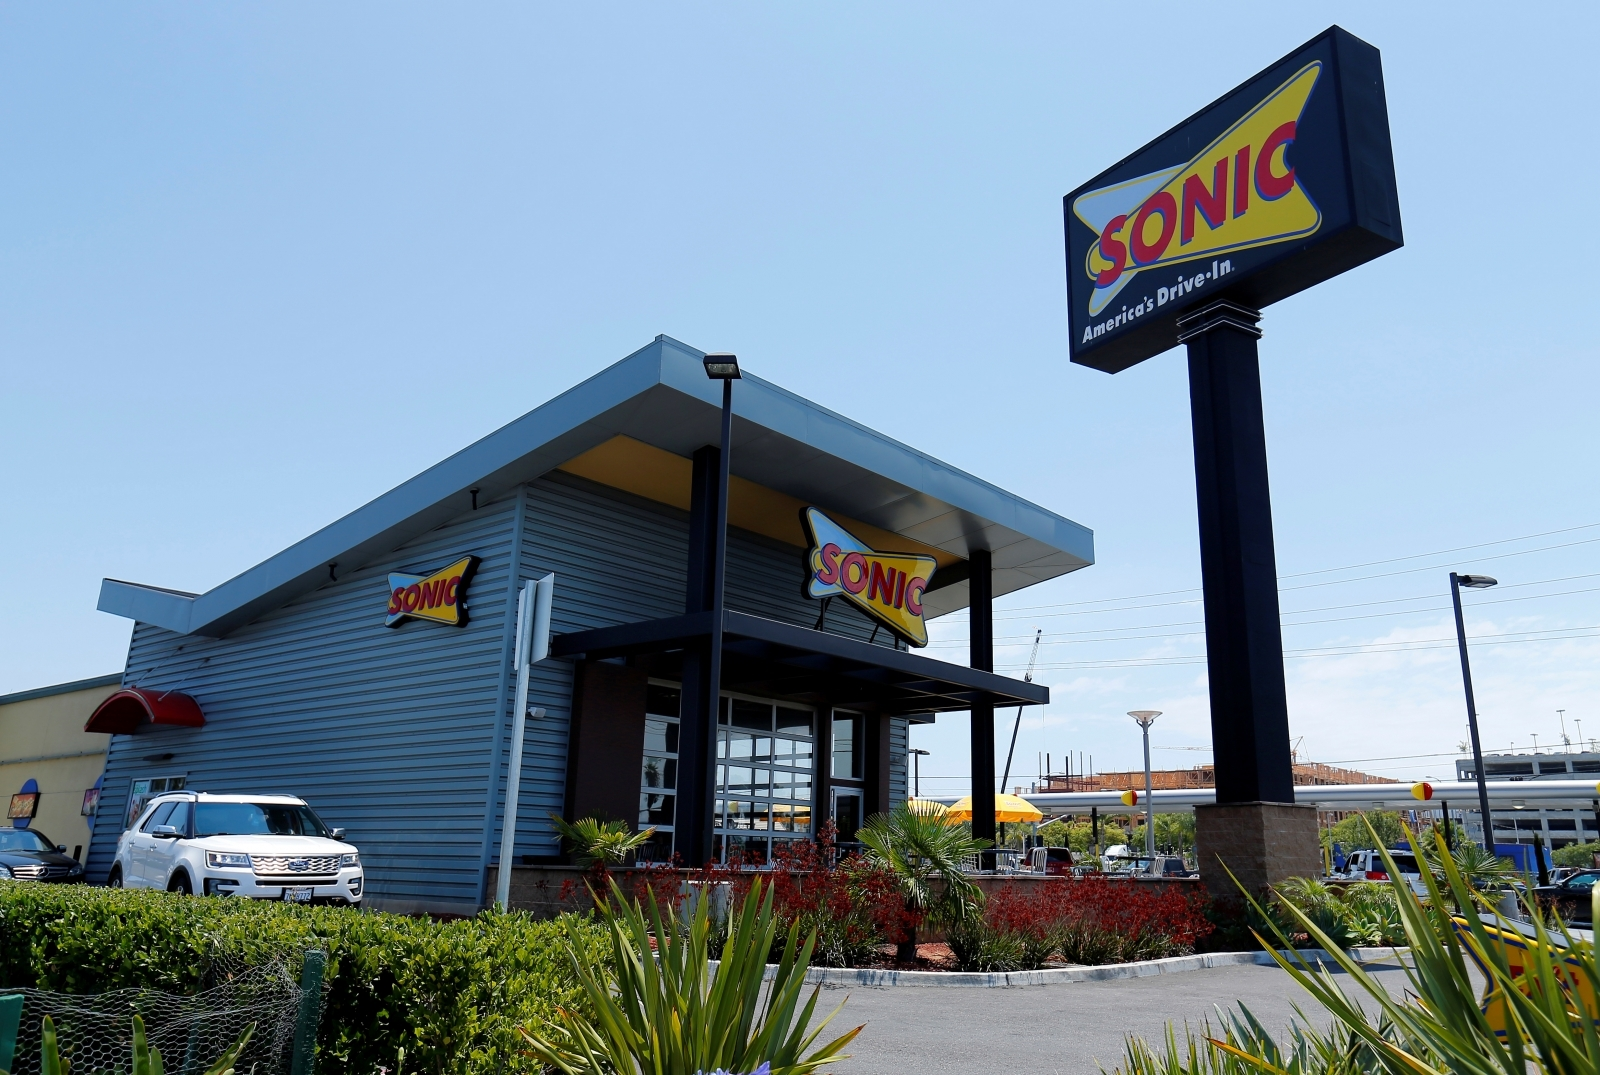 Sonic Drive-In customer credit card information may have been compromised